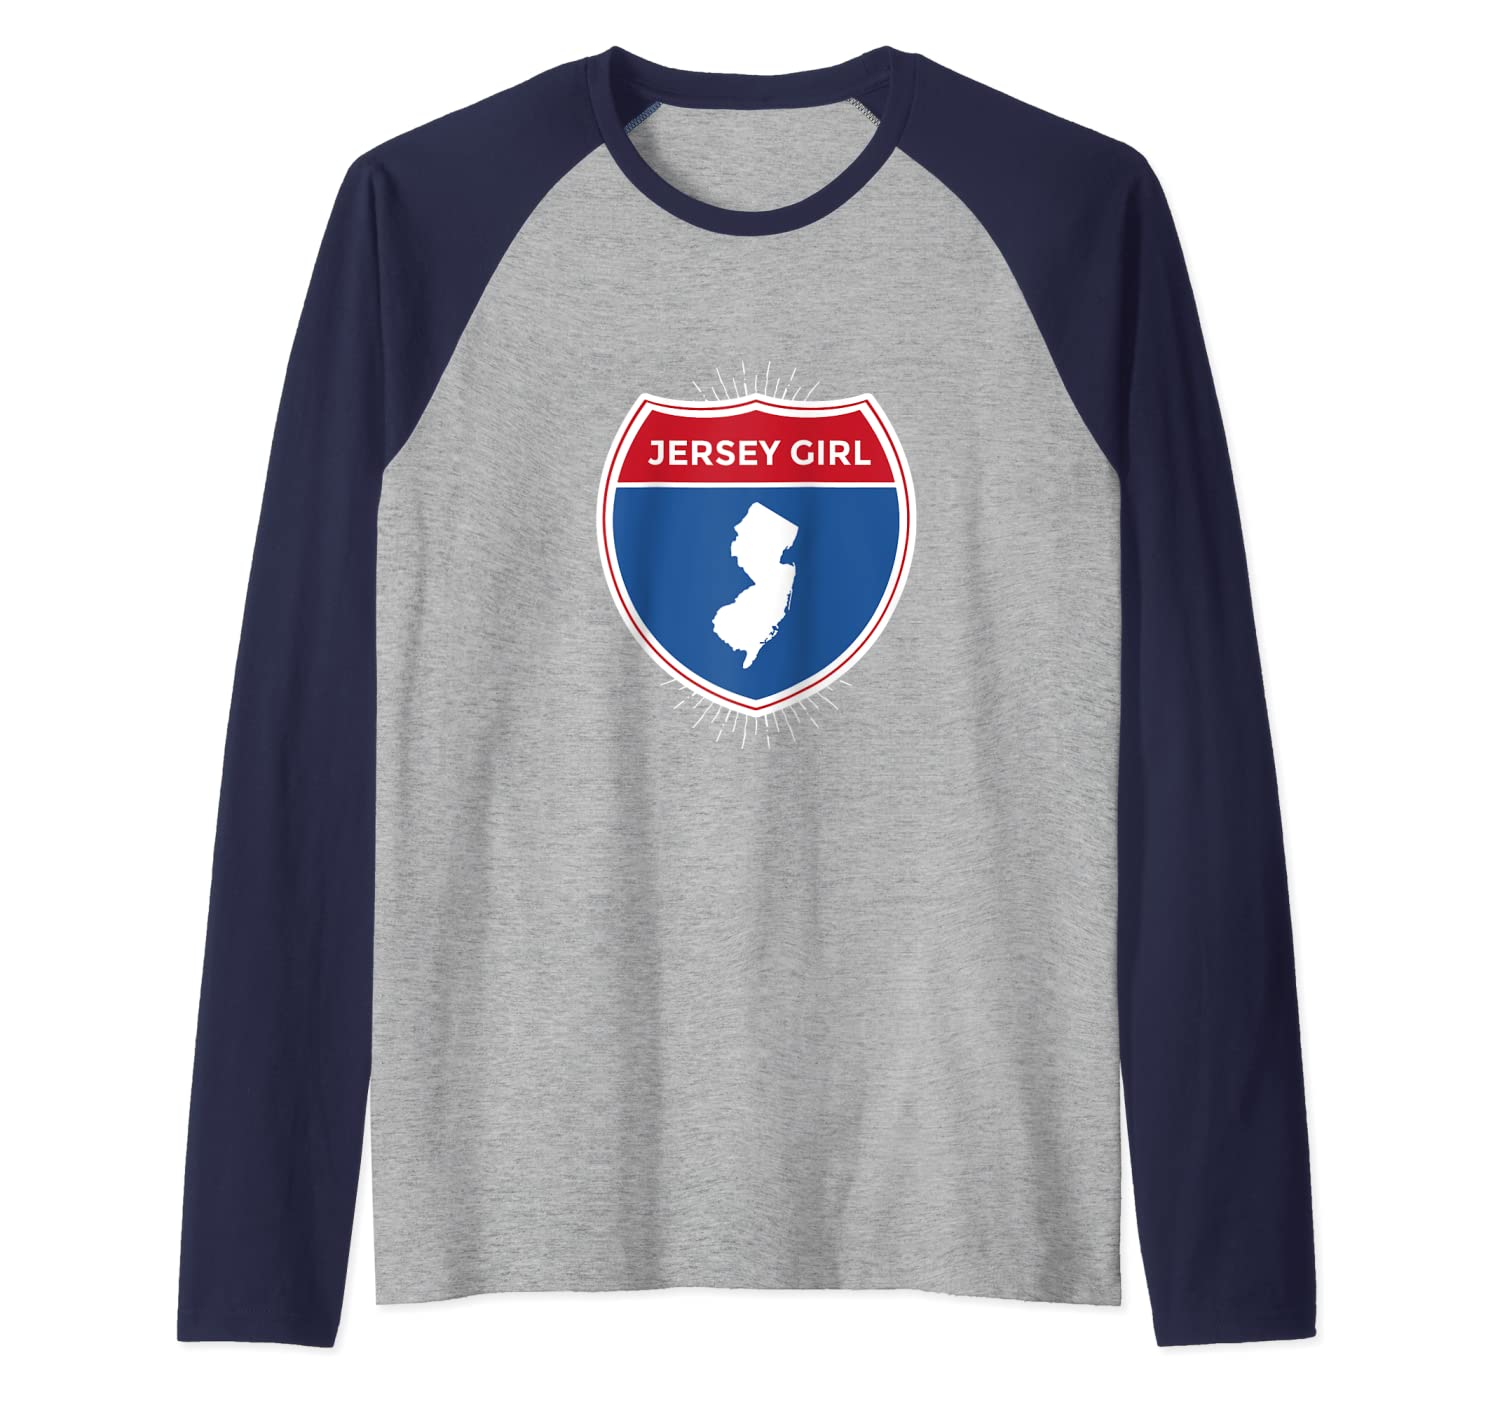 Jersey New Jersey Strong Girl NJ Turnpike Exit Garden State Raglan Baseball Tee